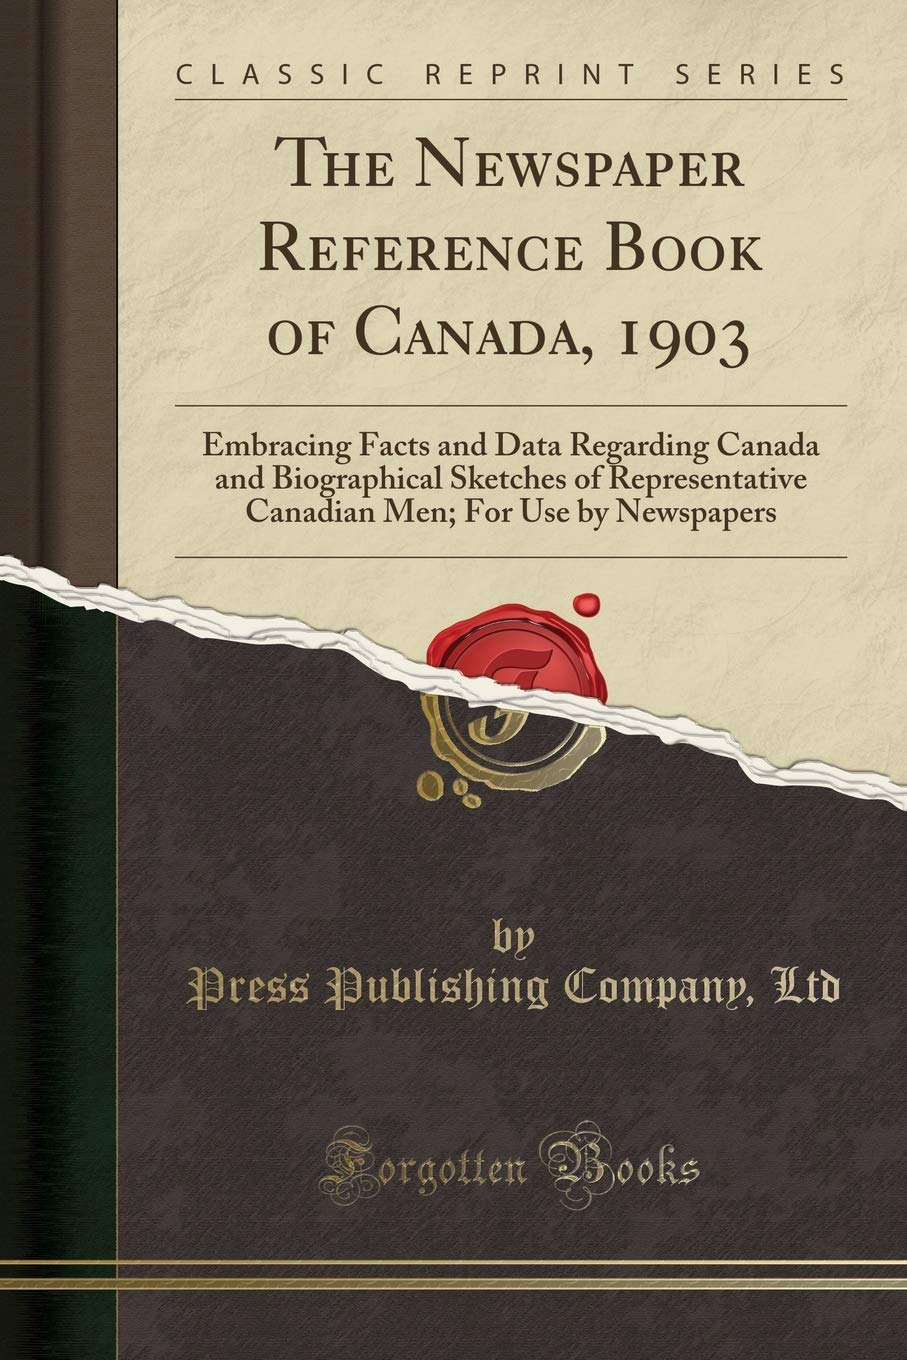 The Newspaper Reference Book of Canada, 1903: Embracing Facts and Data Regarding Canada and Biographical Sketches of Representative Canadian Men; For Use by Newspapers (Classic Reprint) pdf epub